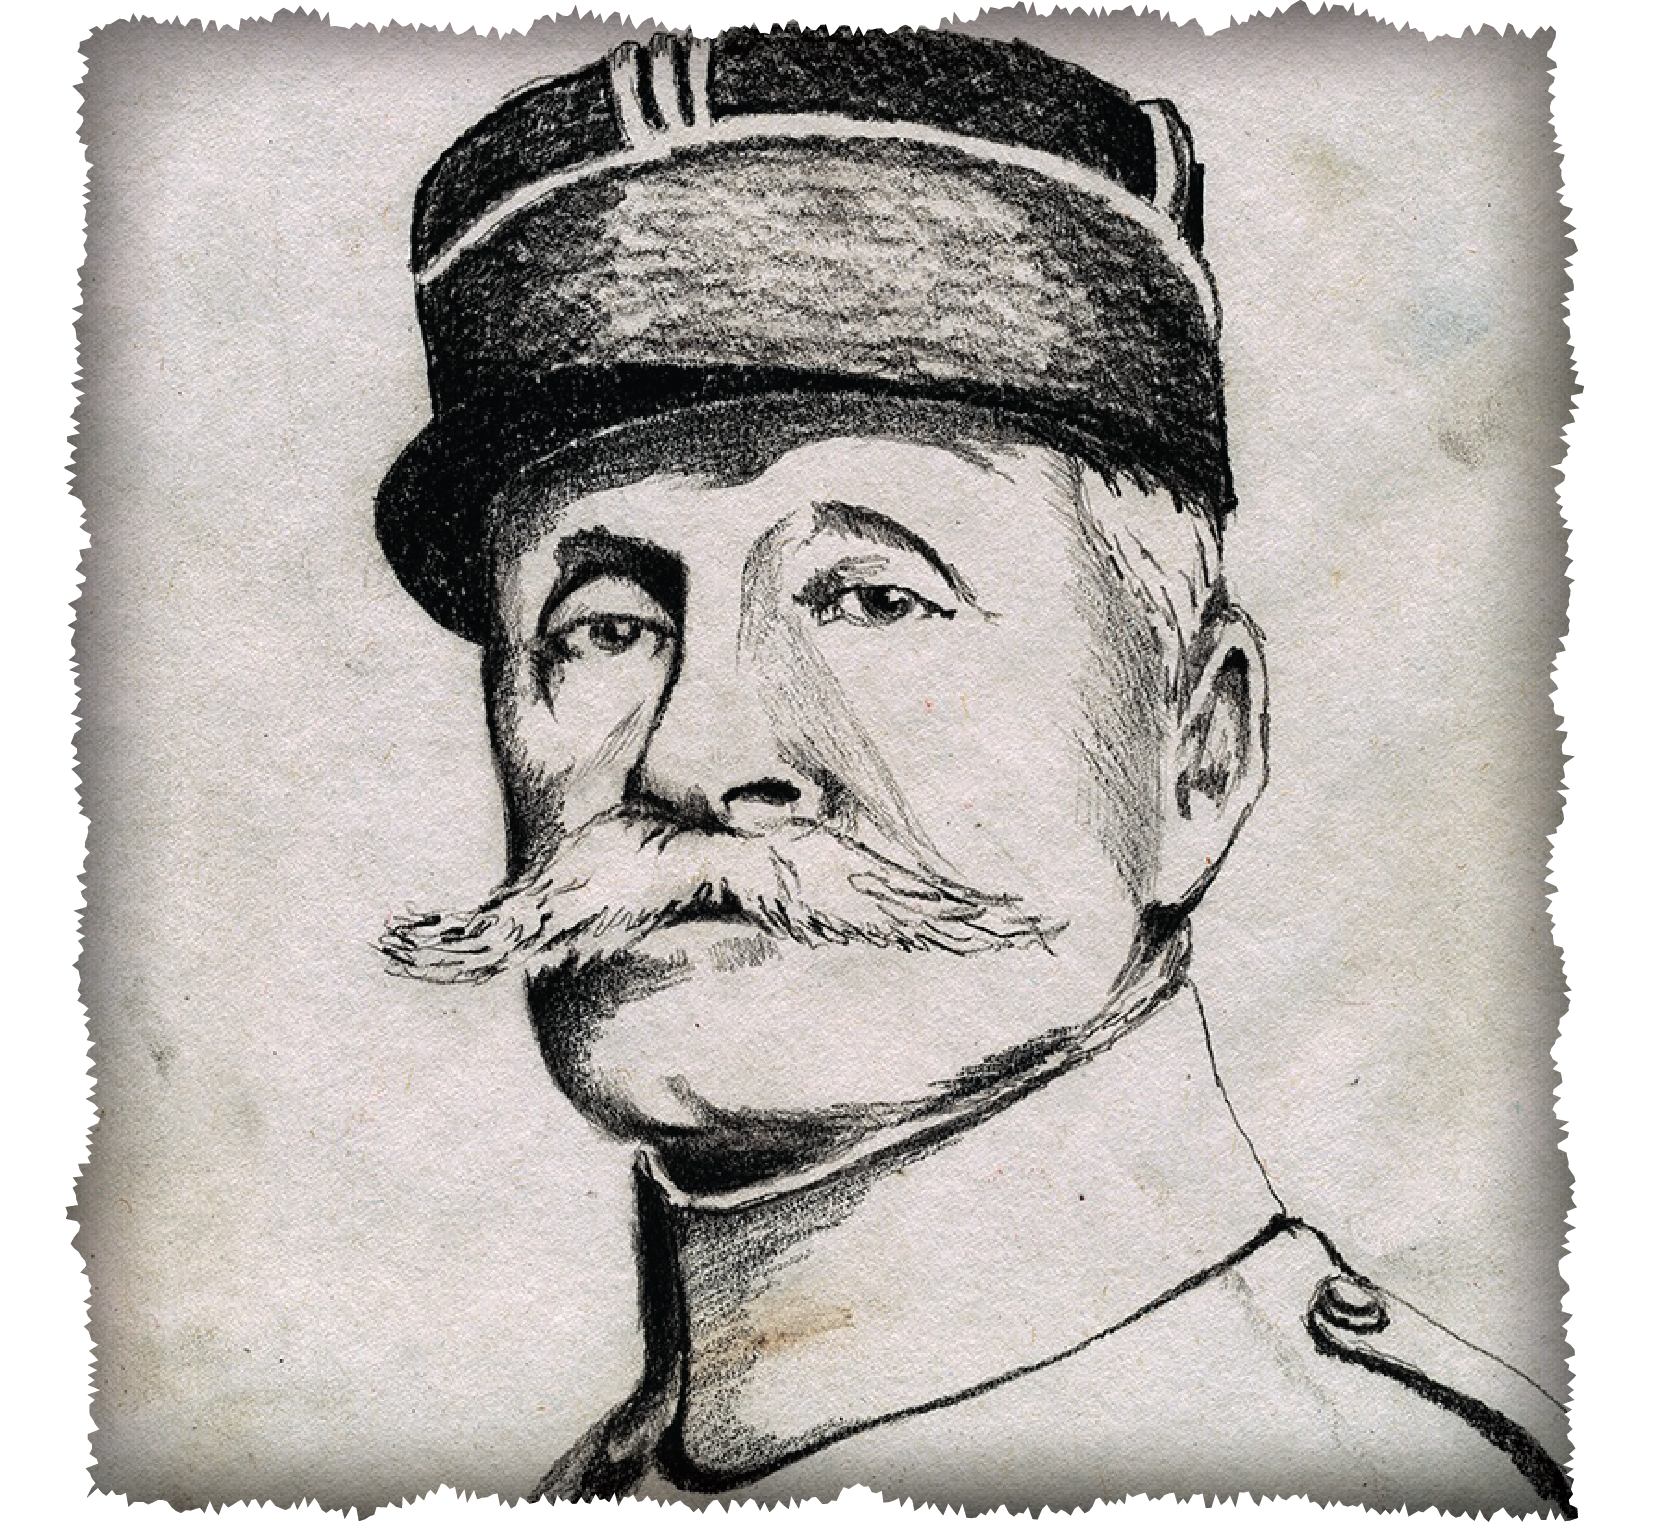 Allied Supreme Commander Ferdinand Foch